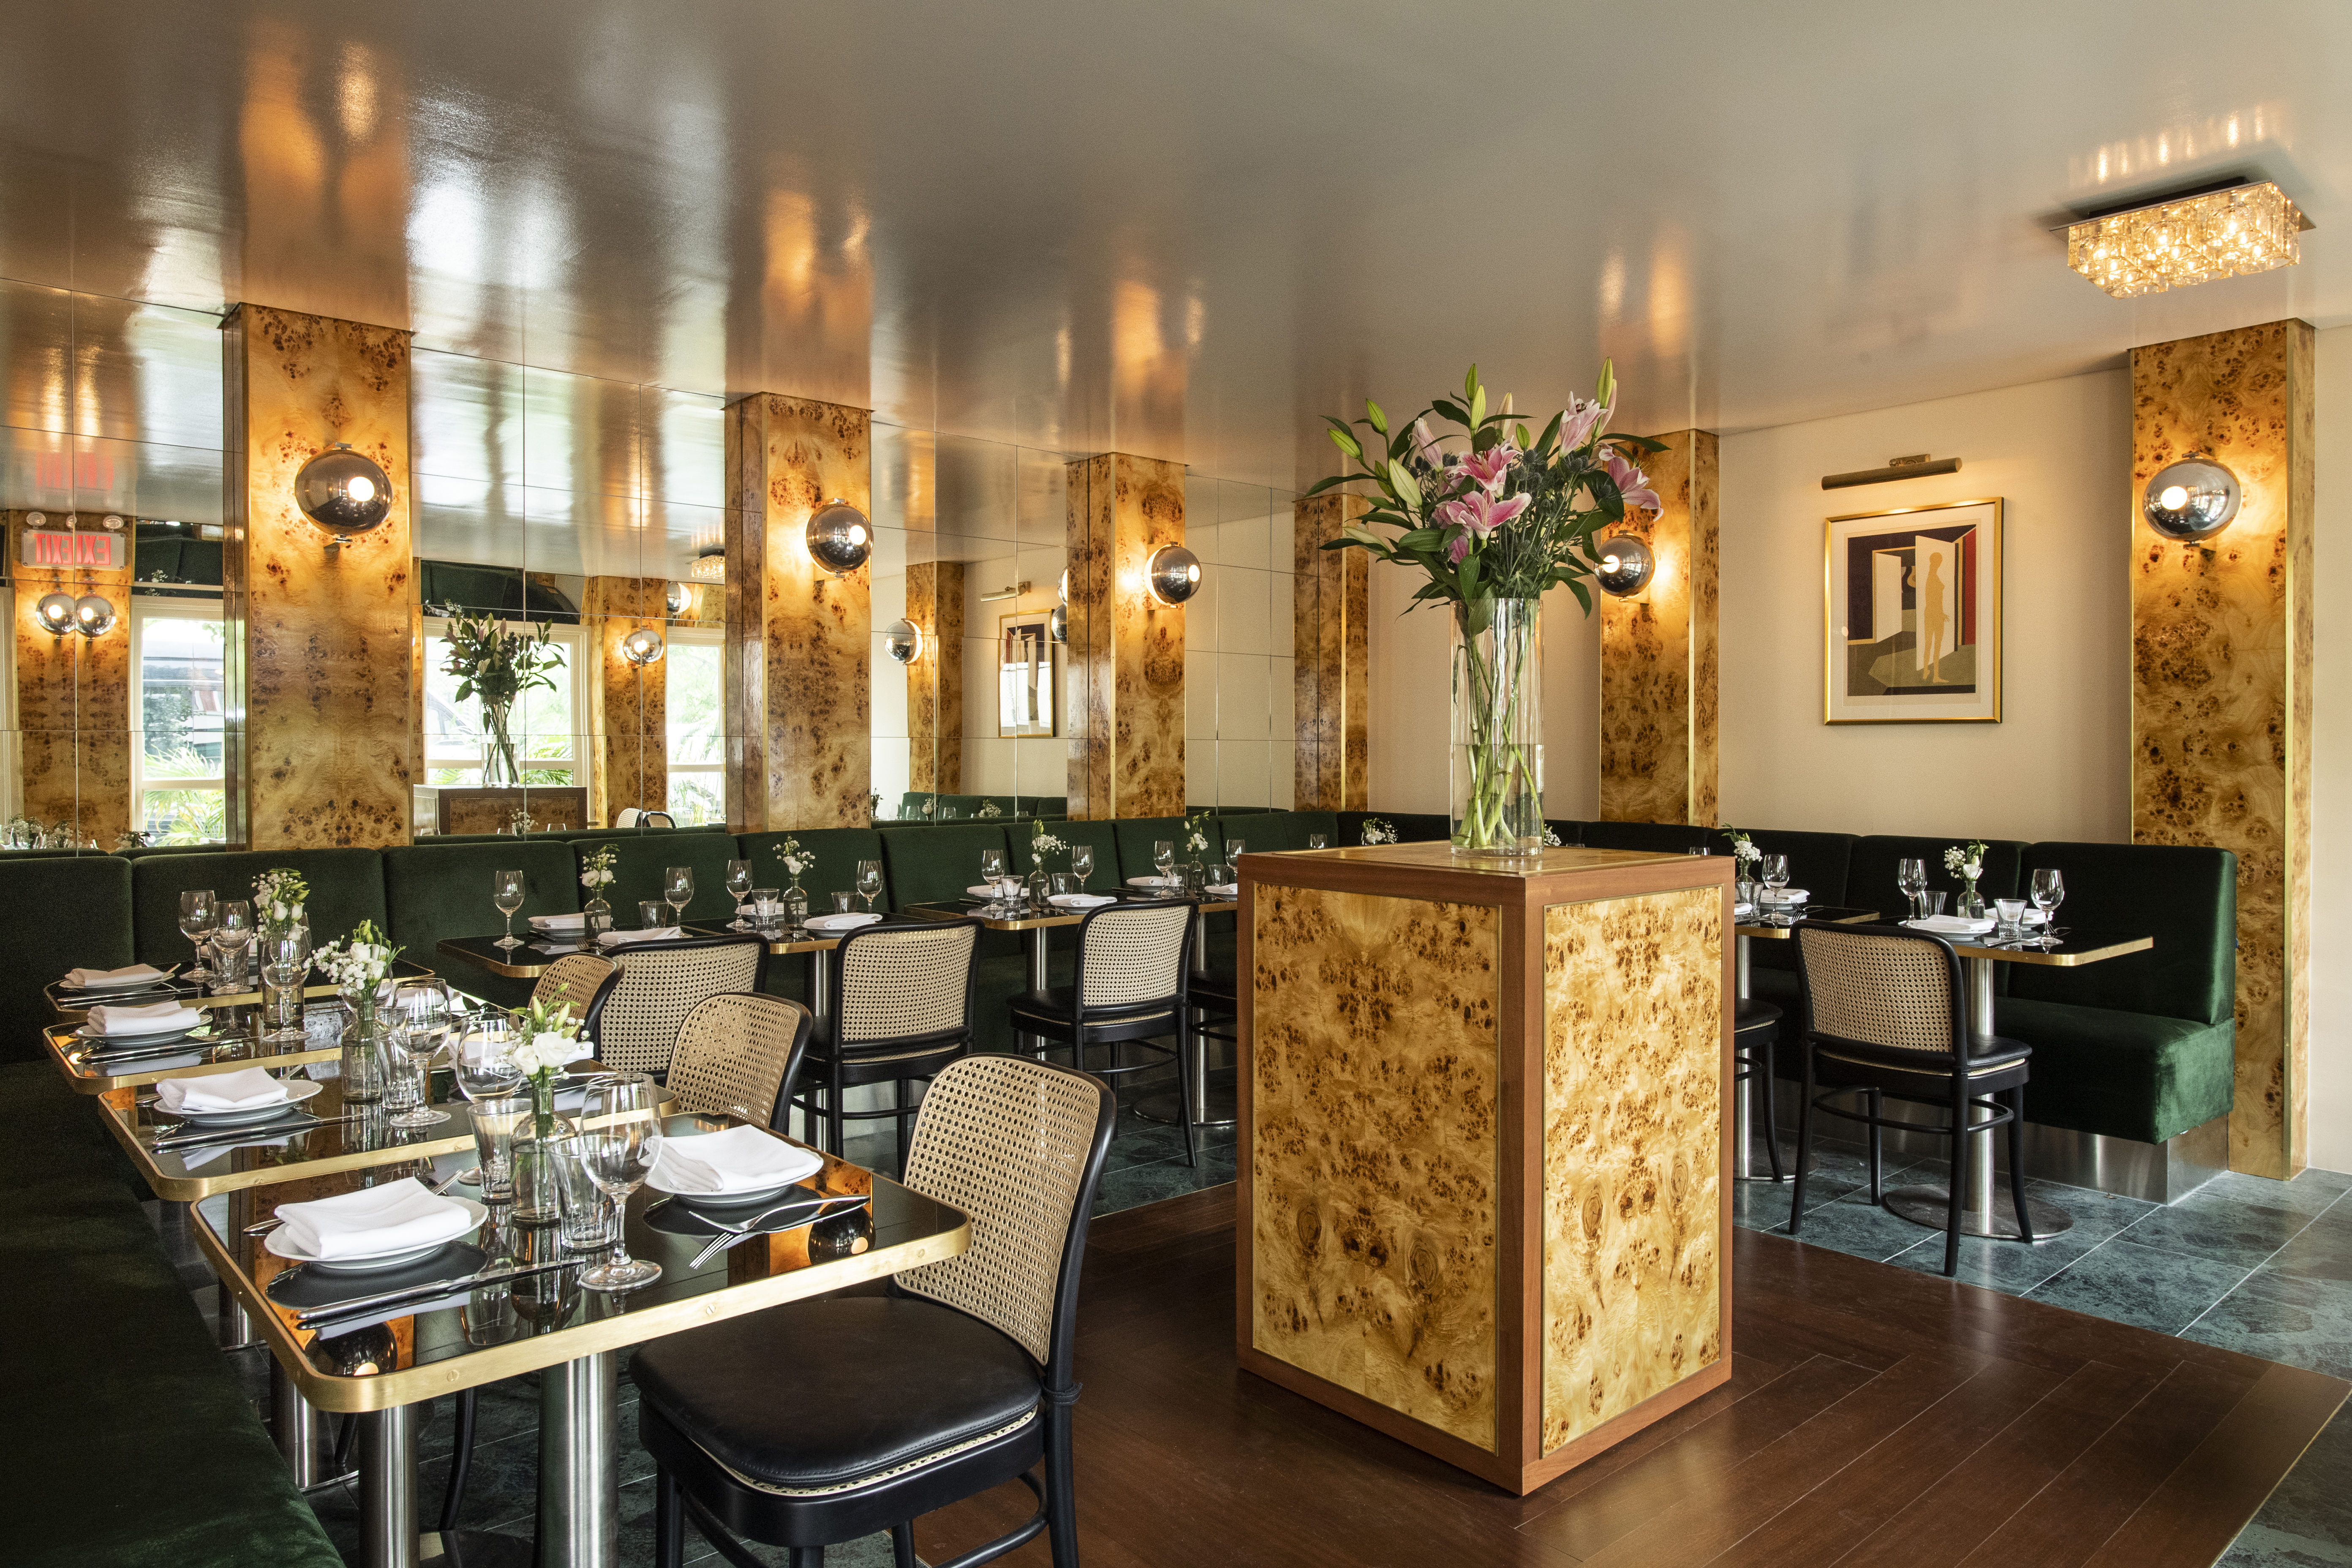 The golden dining rom of Babs, with green banquettes lining the sides